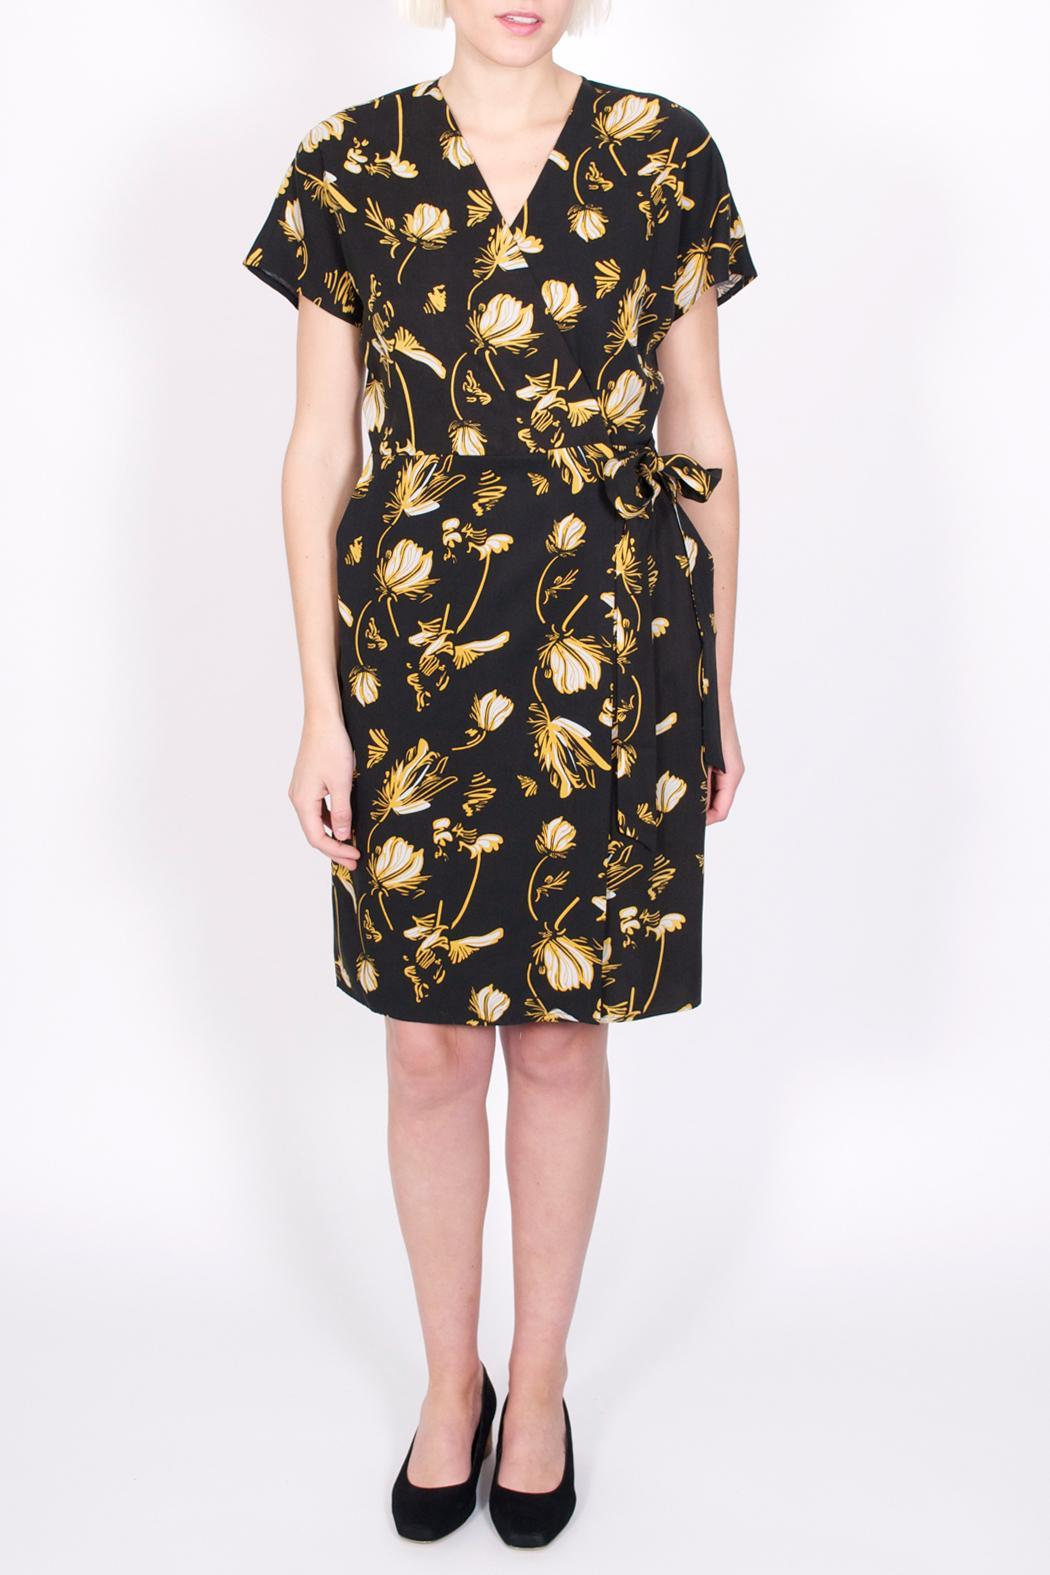 Dress Female curated Just Elay Life By Williamsburg From Wrap nvxWtycarW